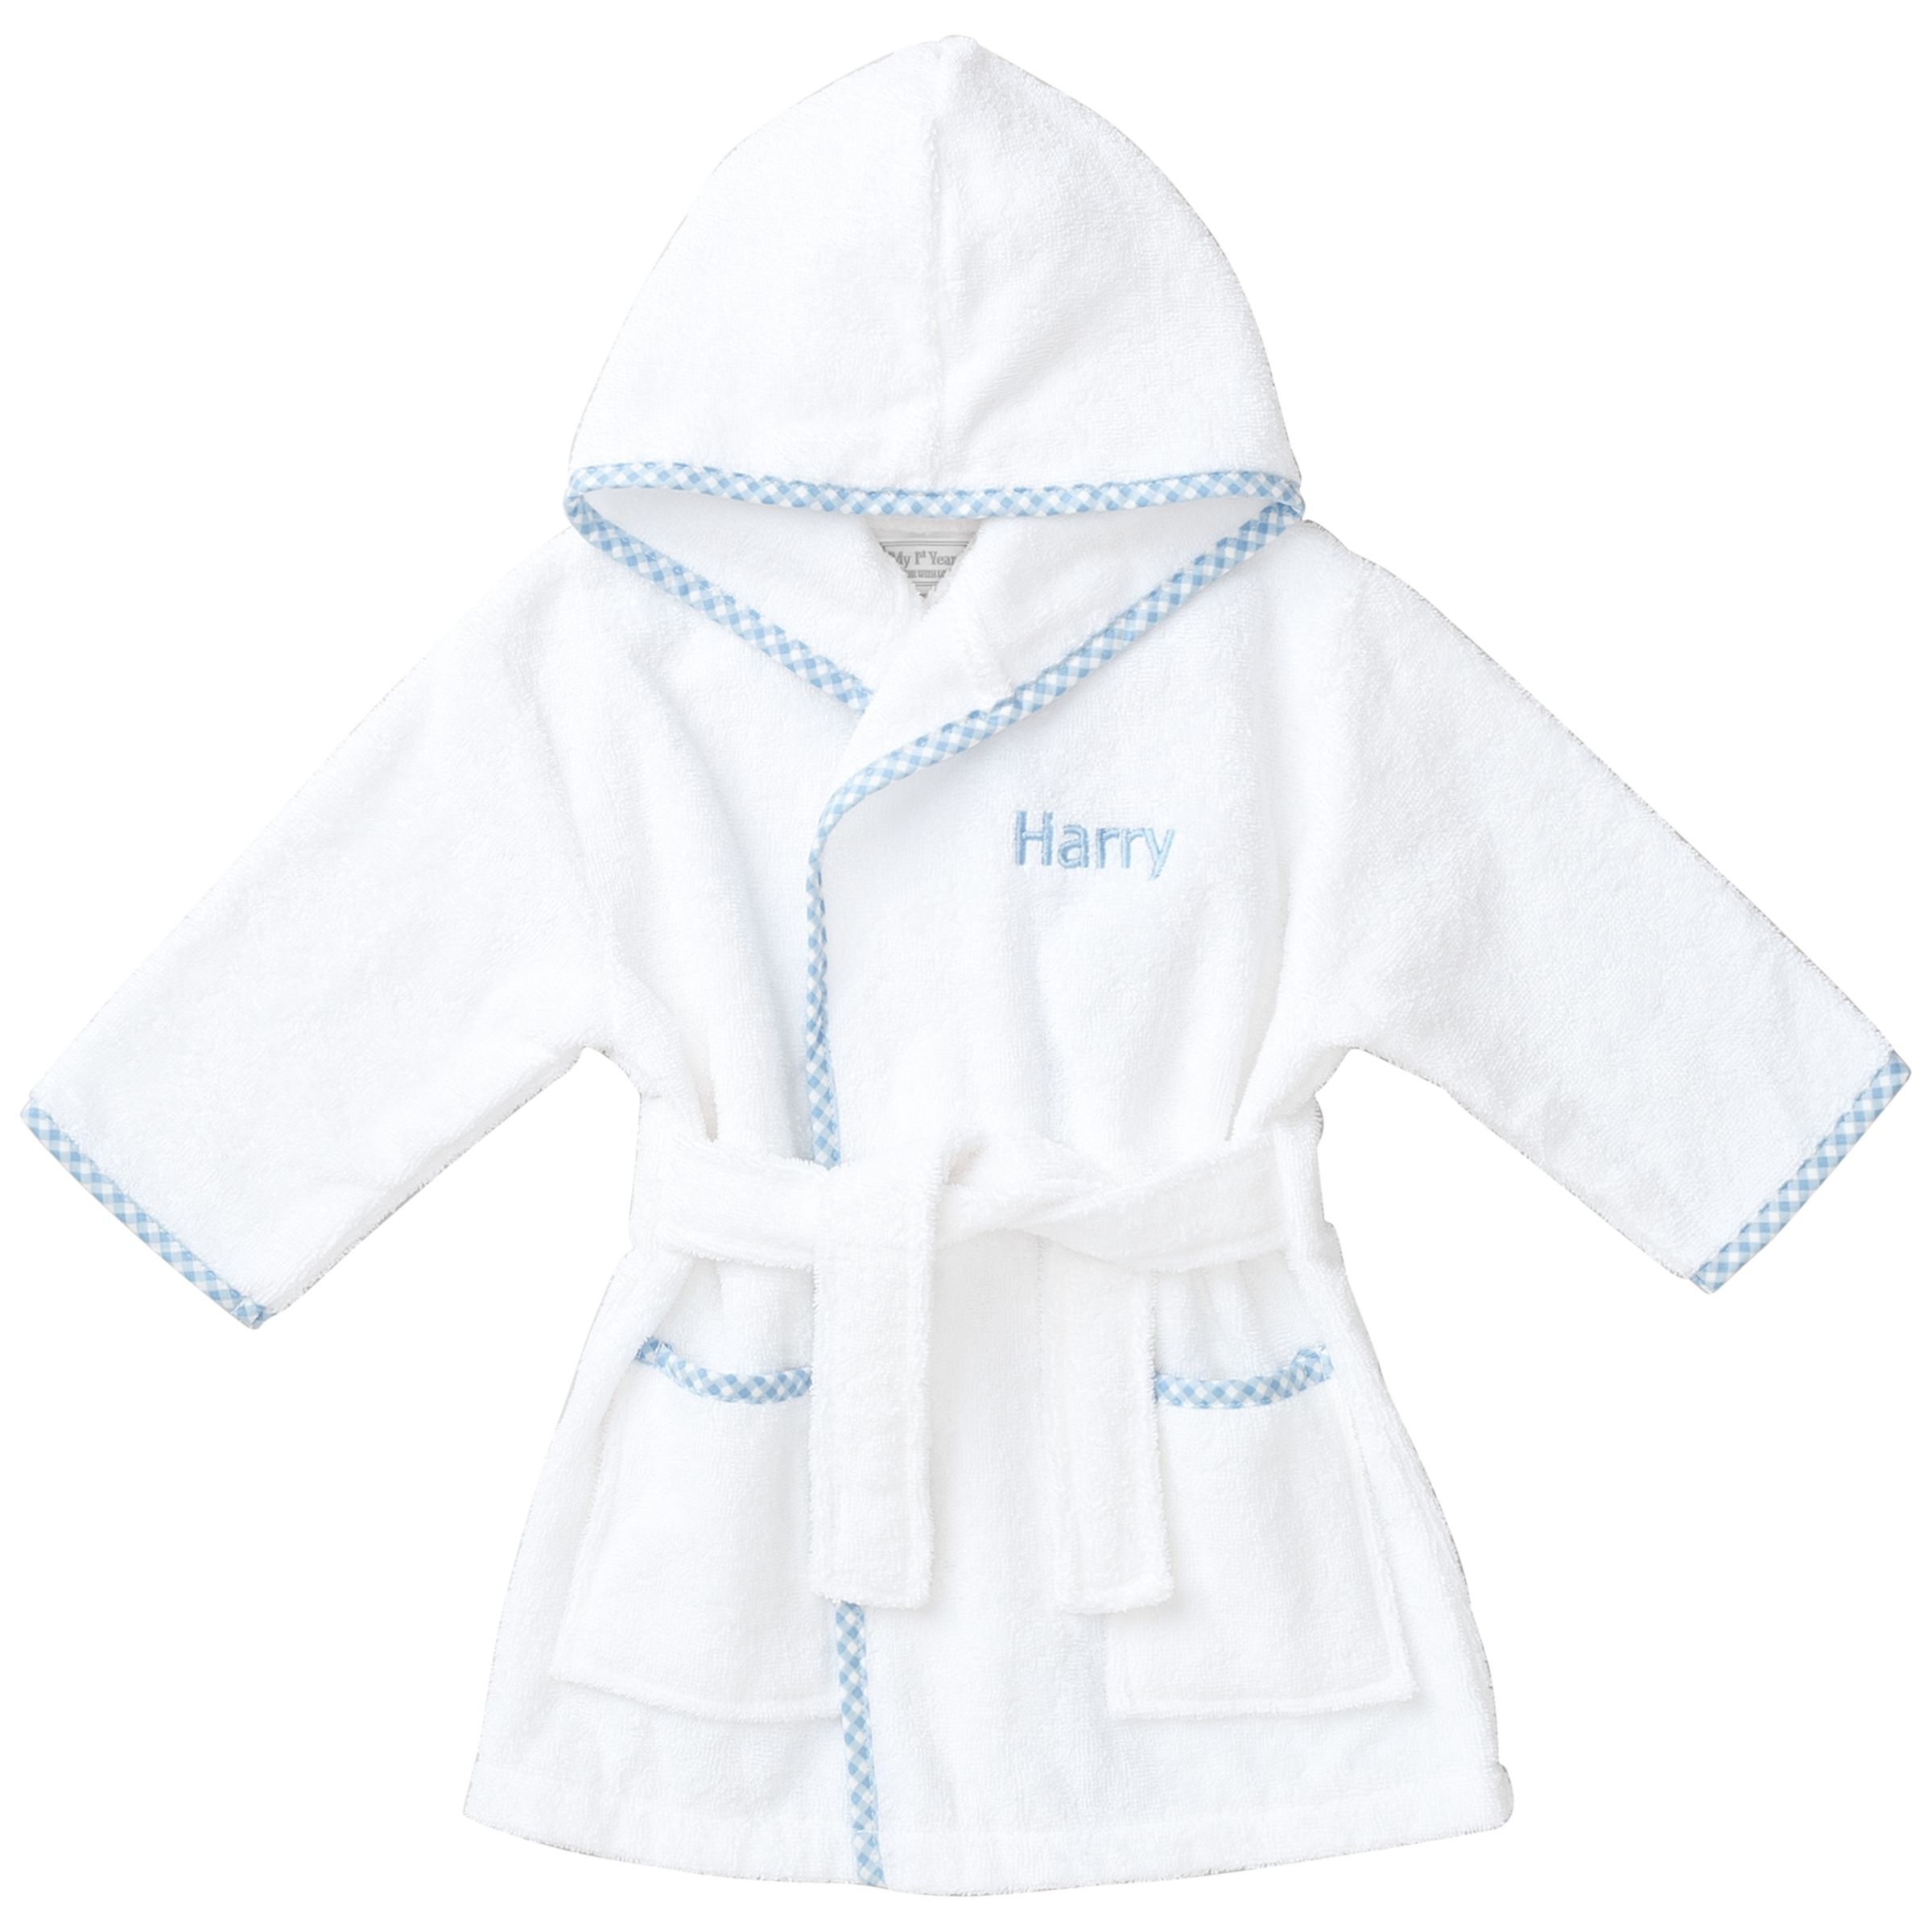 My 1st Years My 1st Years Baby Personalised Prince Gingham Robe, Multi